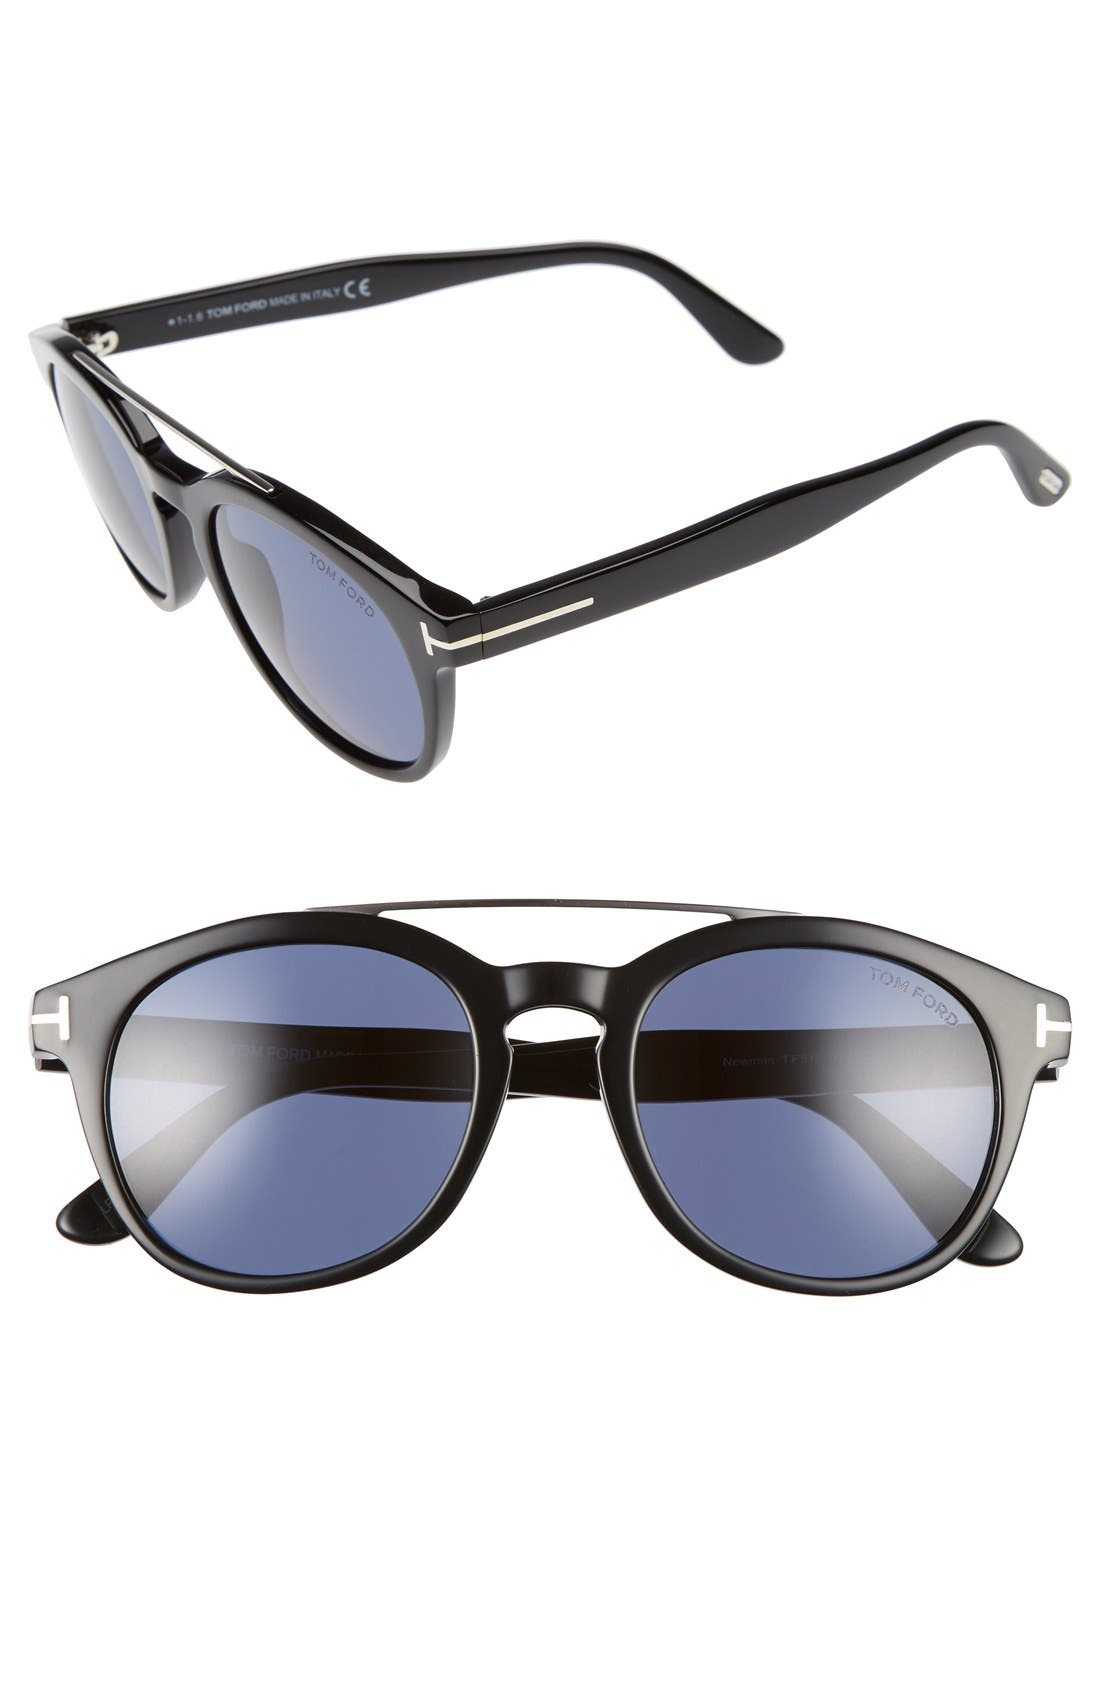 Newman 53mm Sunglasses,                             Main thumbnail 1, color,                             Black/ Rhodium/ Blue